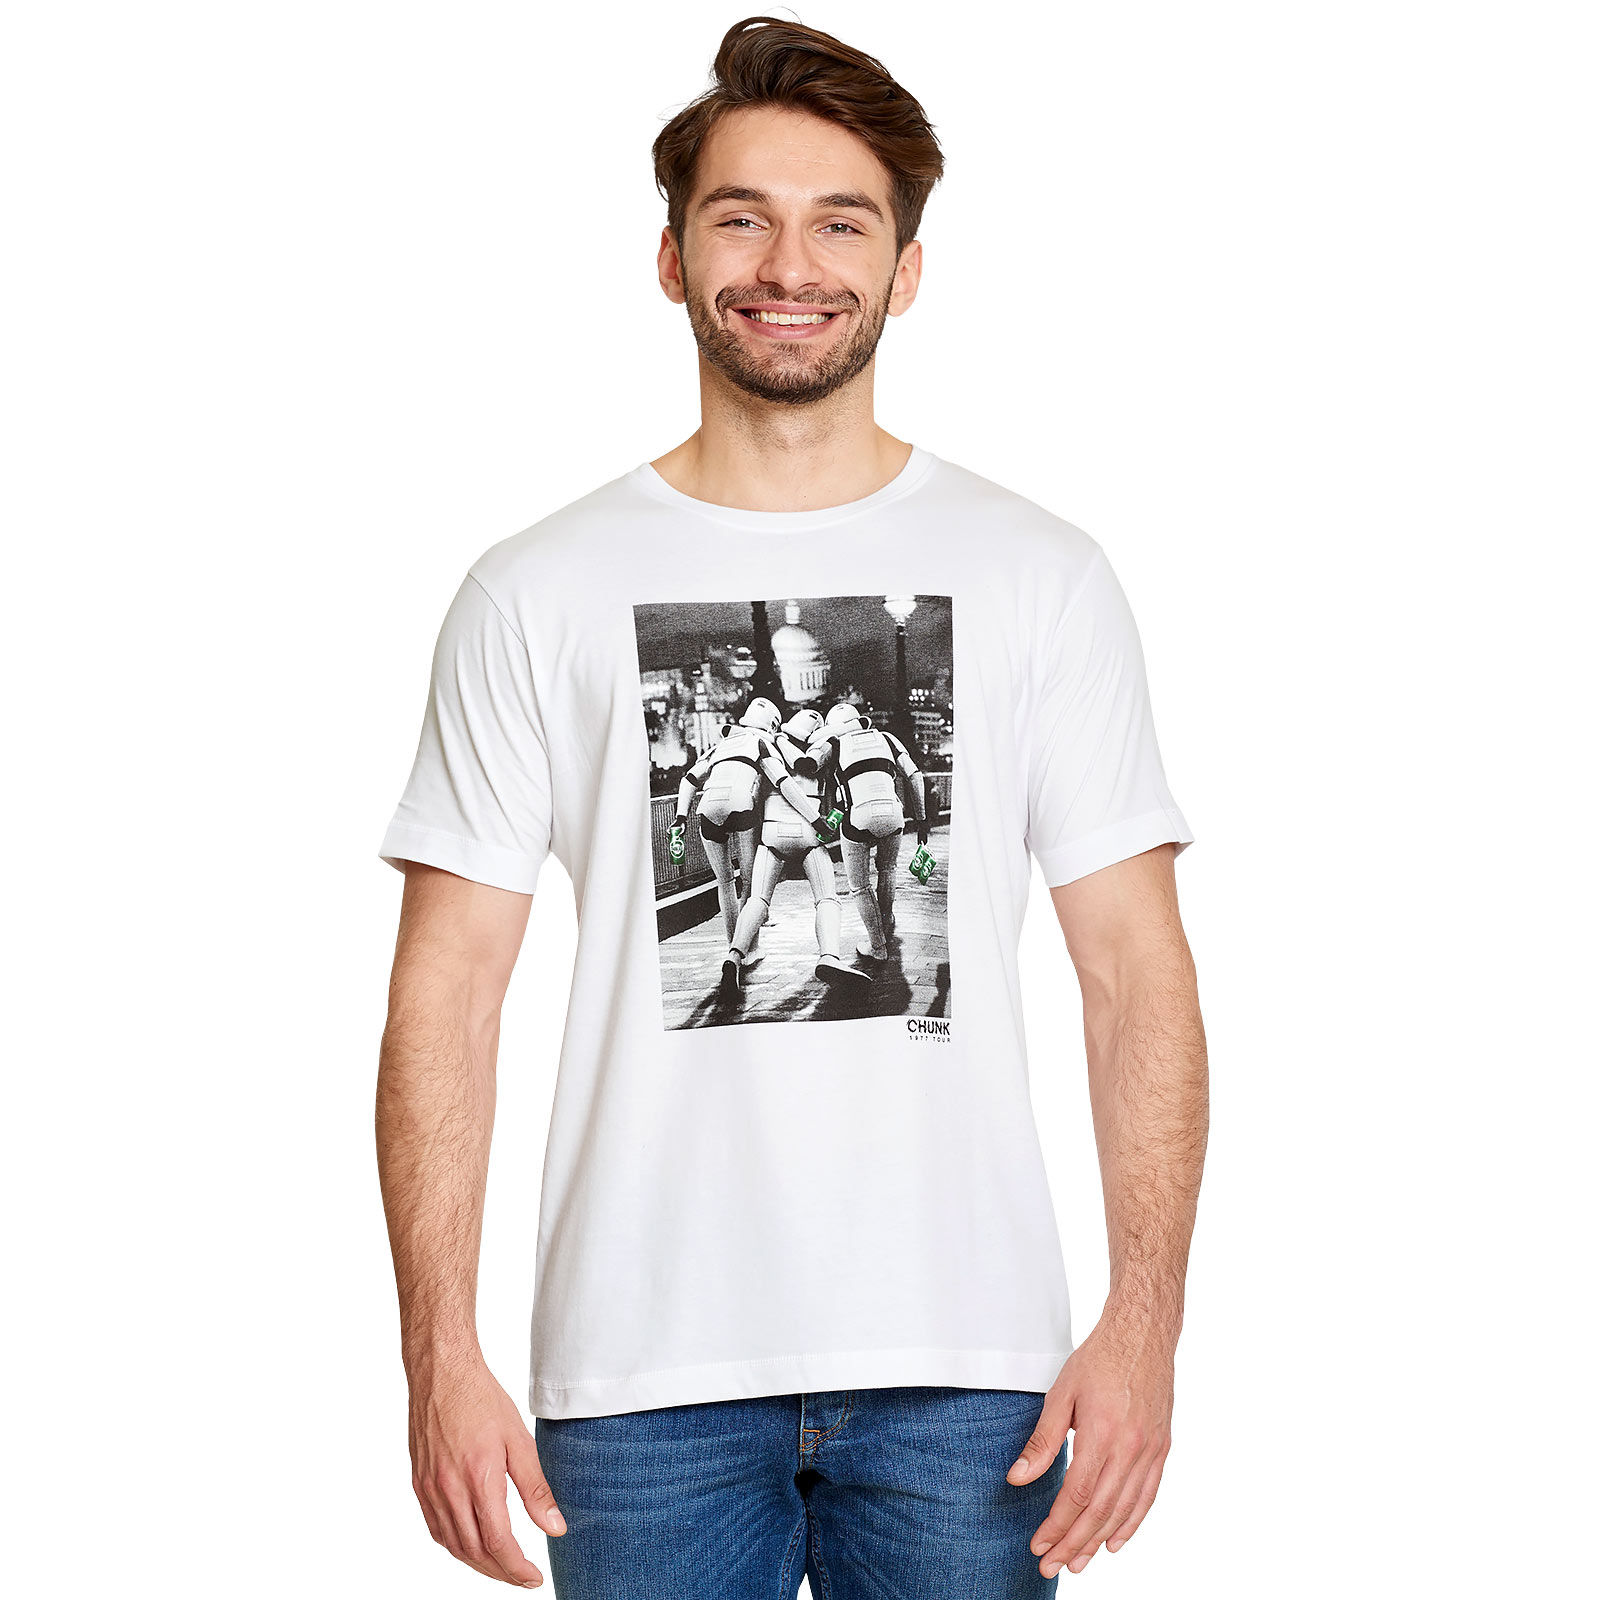 Imperial Fighters at Night T-Shirt für Star Wars Fans